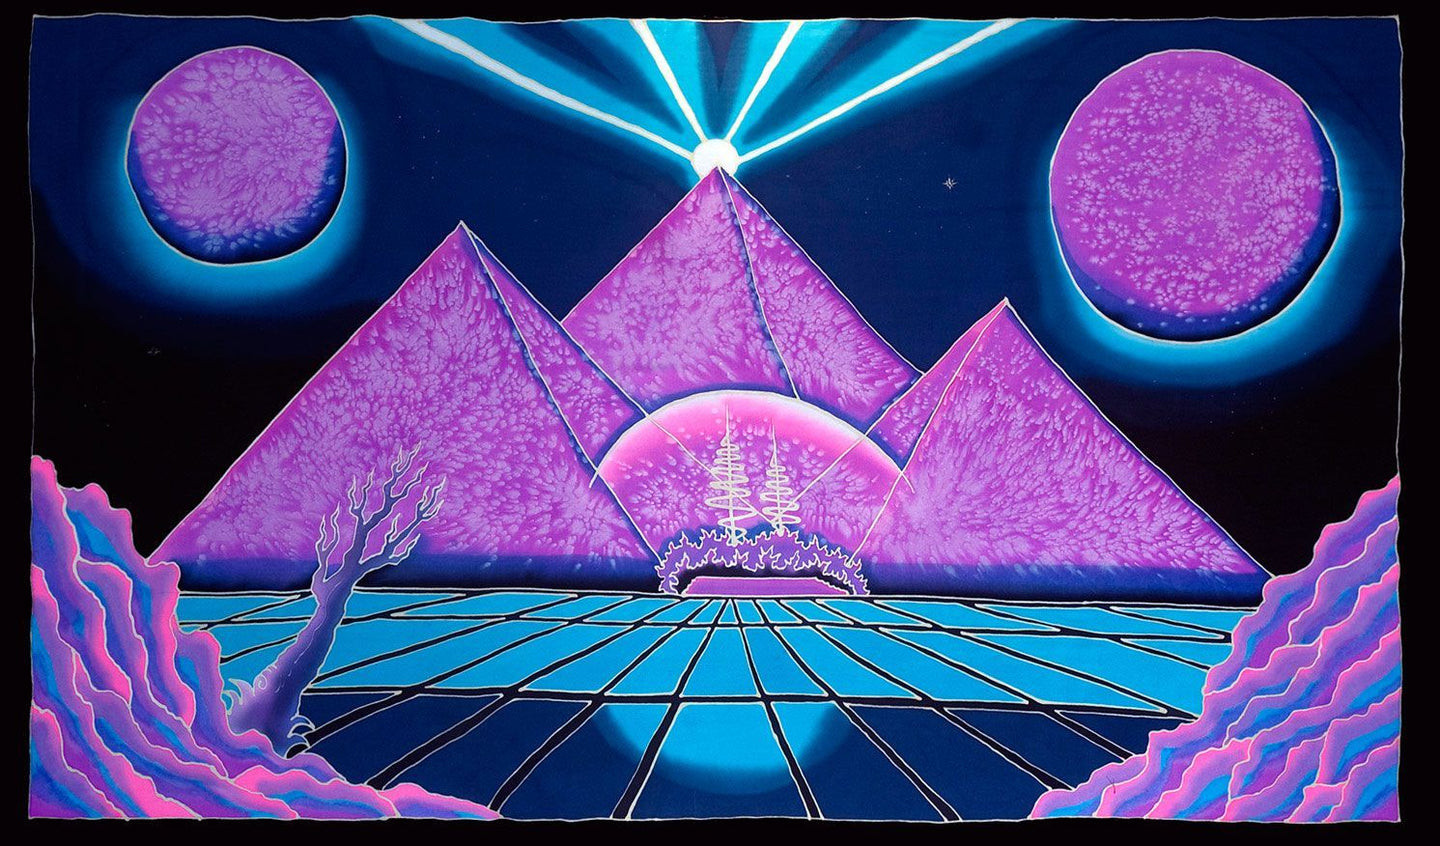 UV Wallhanging : Space Pyramid - UV Wallhangings - Space Tribe